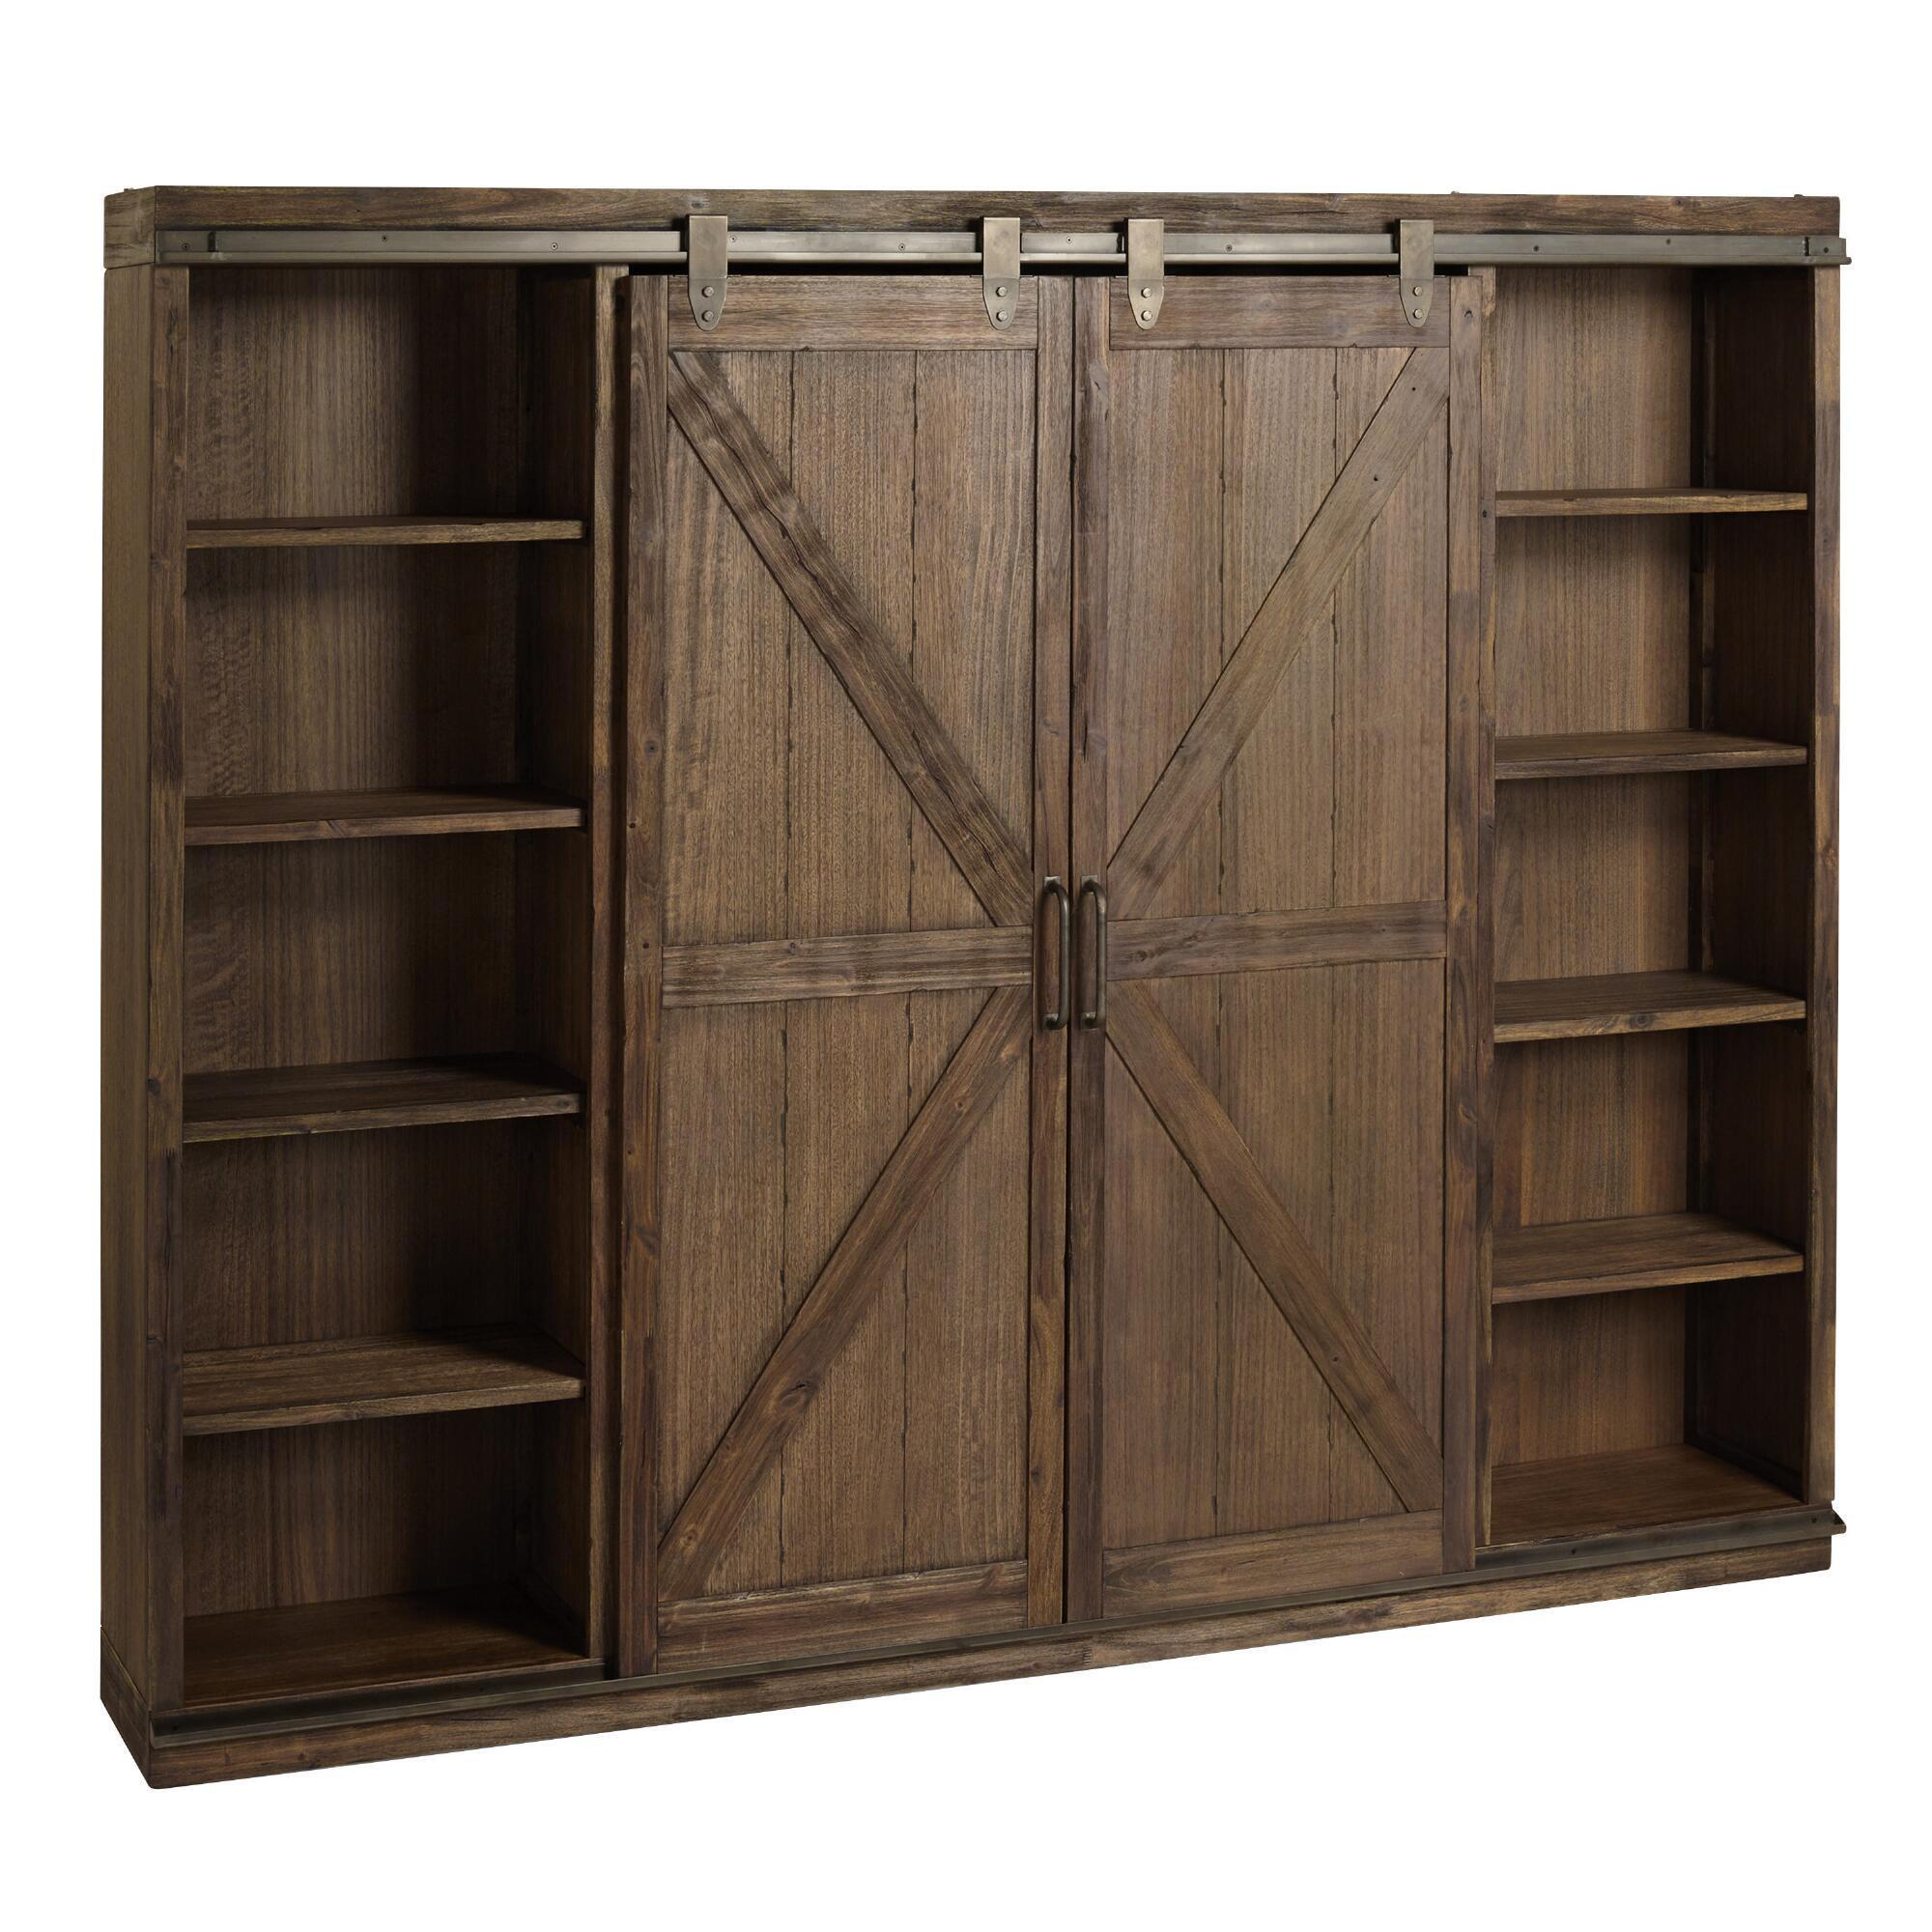 White Farmhouse Sliding Door Cabinet: Wood Farmhouse Barn Door Bookcase